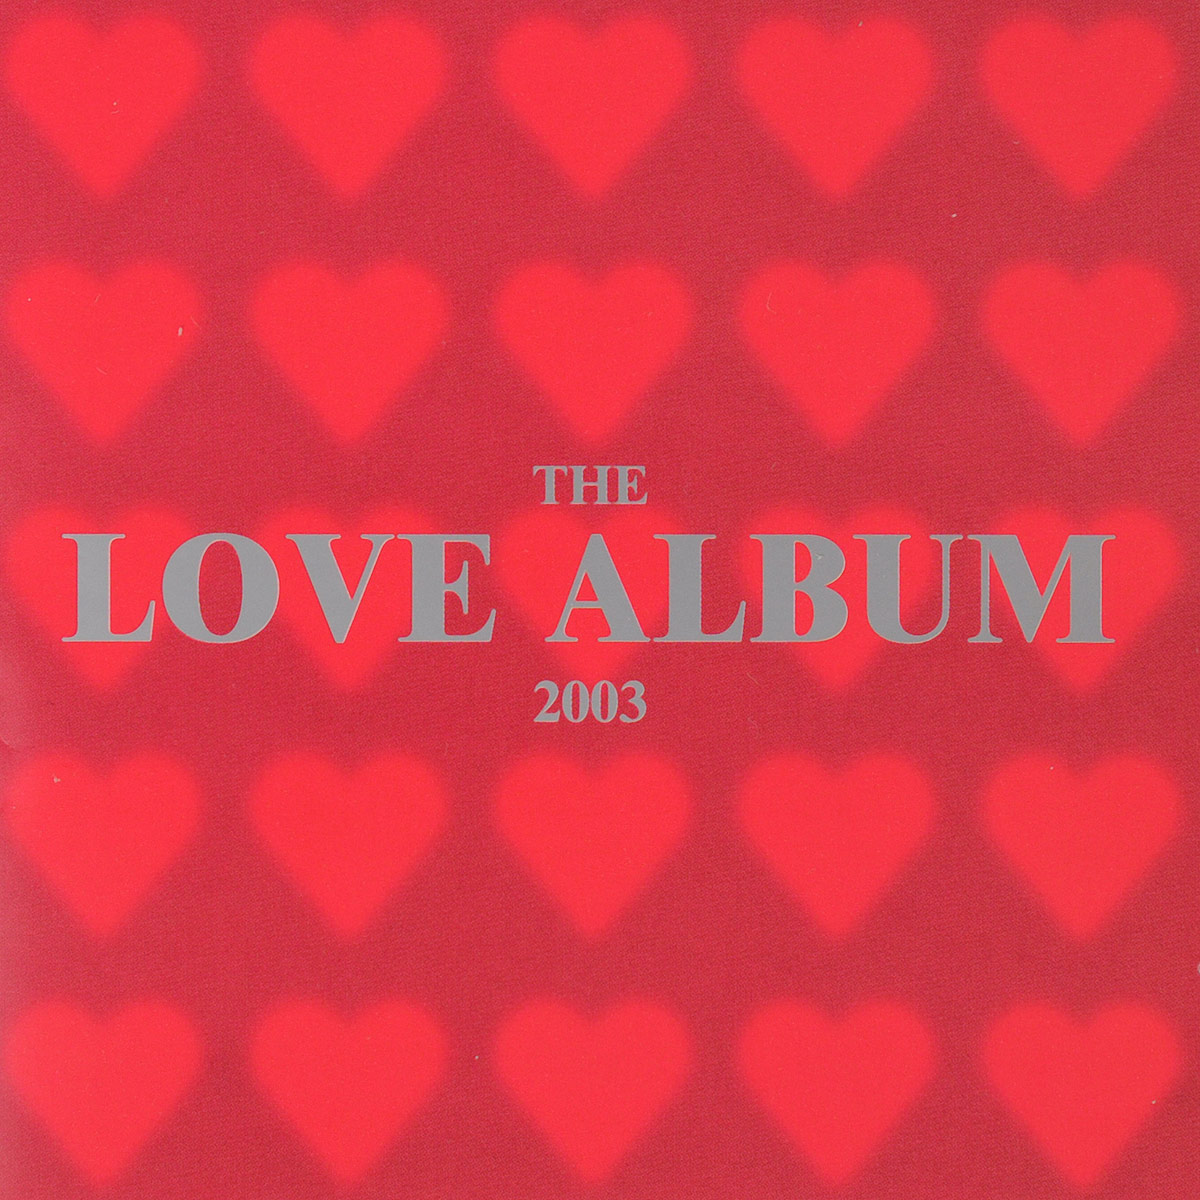 VARIOUS ARTISTS. THE LOVE ALBUM 2003 виниловая пластинка various artists john morales presents the m